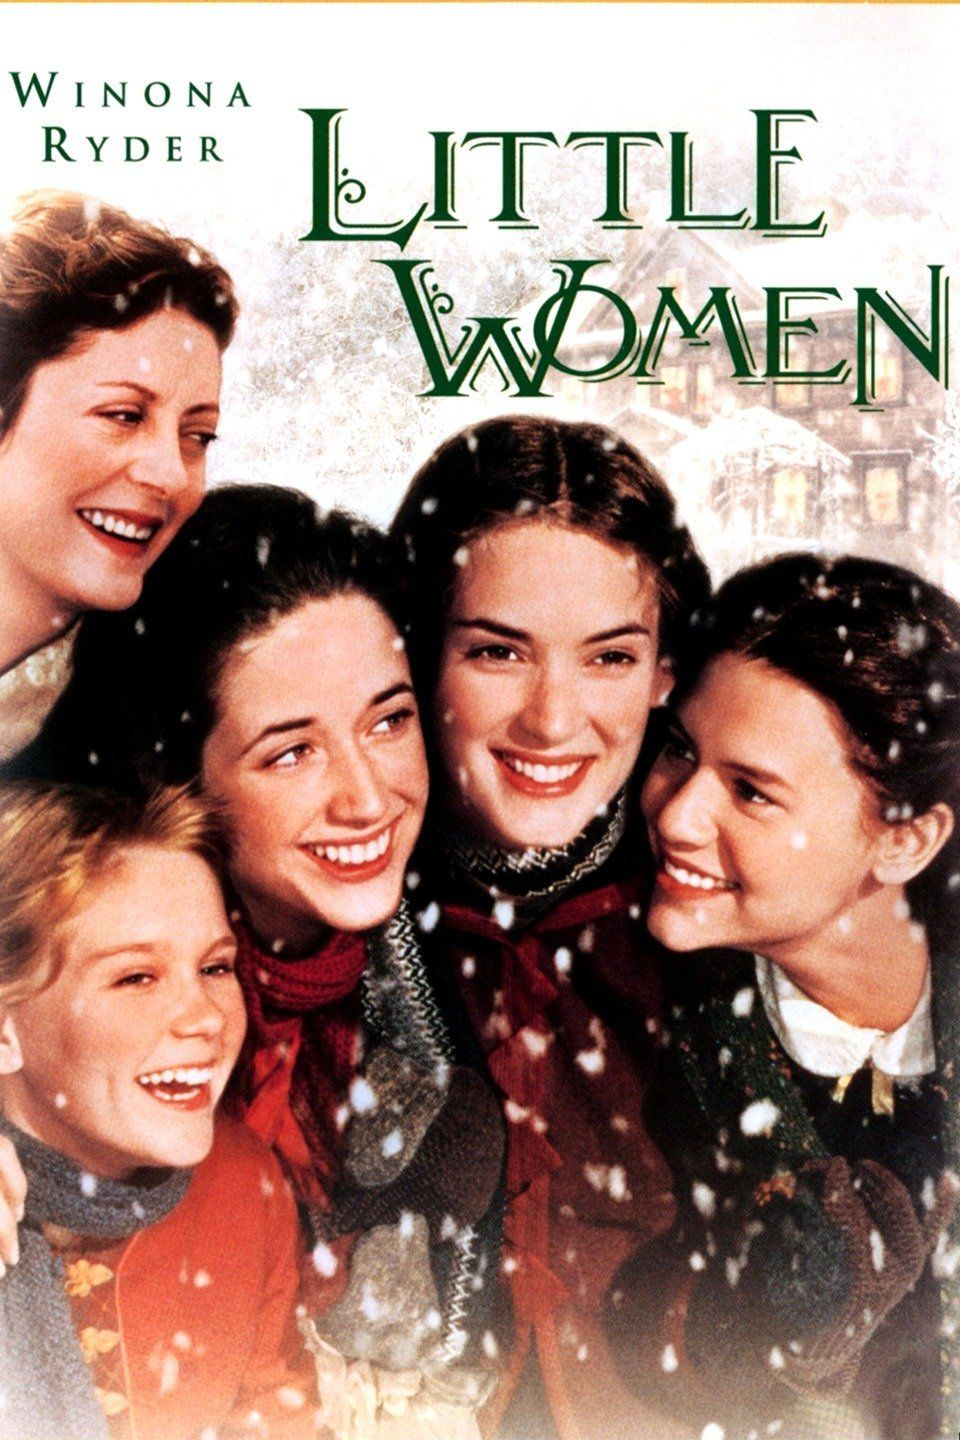 Little Women Movieguide Movie Reviews For Christians Https Www Movieguide Org Reviews Little Women Html New Movies To Watch New Movies Woman Movie